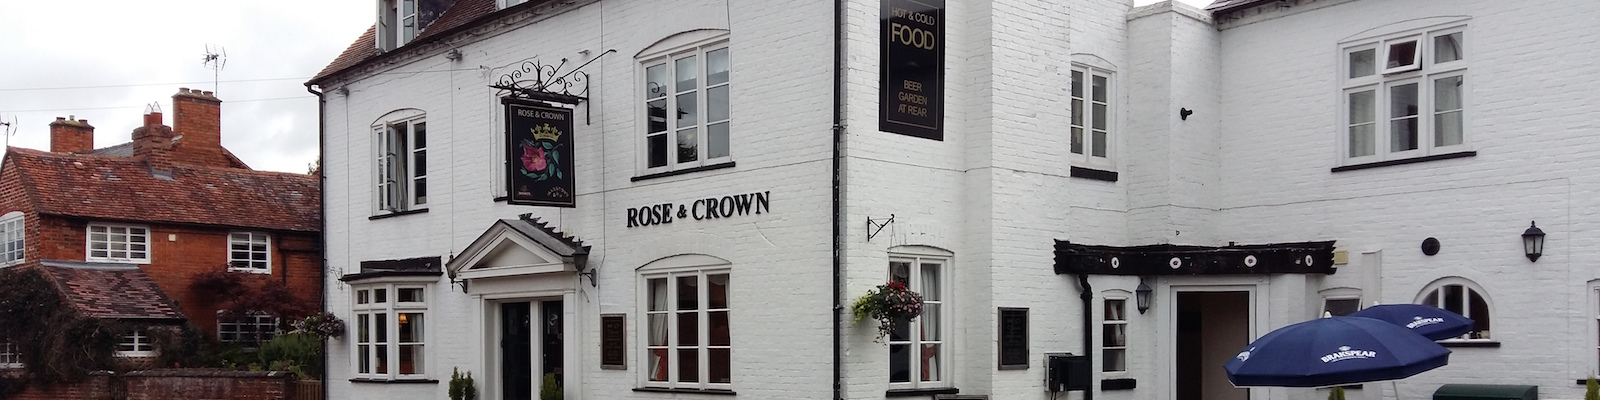 rose and crown feckenham front of pub